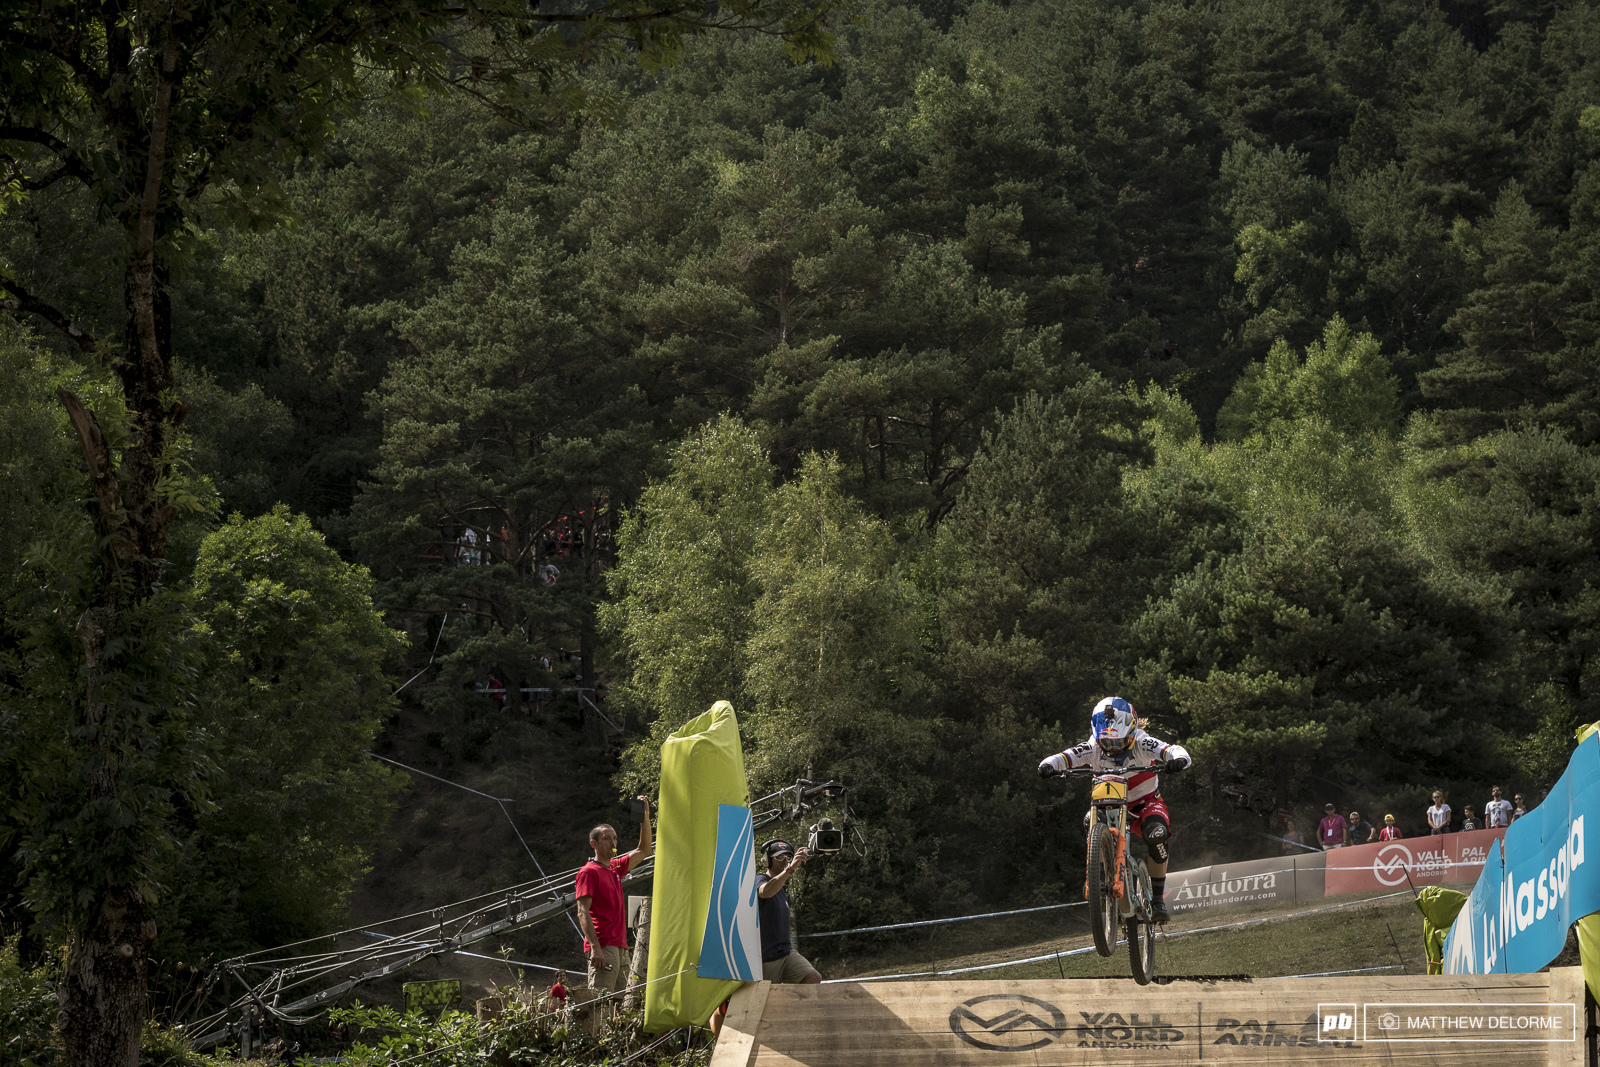 Rachel chucks it in to the finish for her final win of the World Cup season.